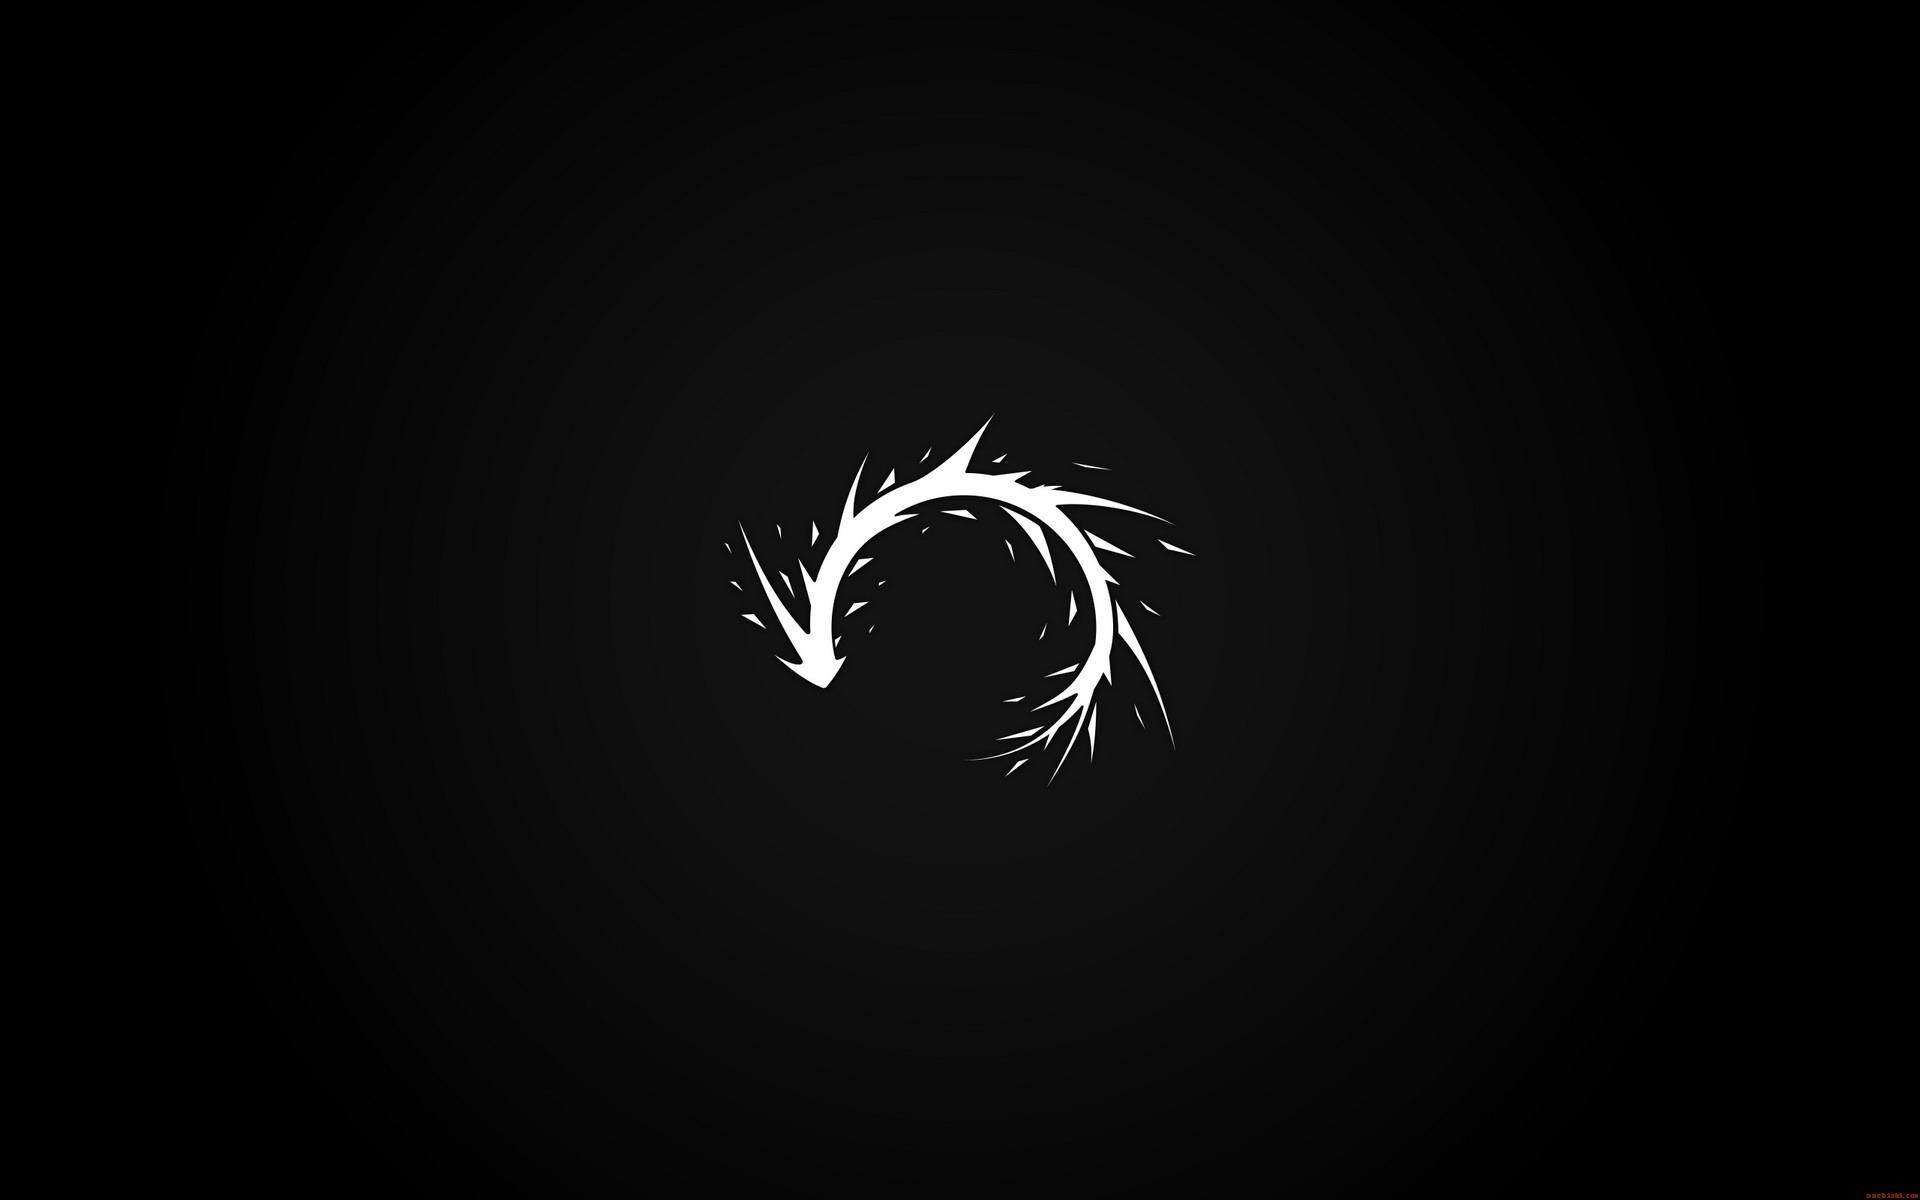 Abstract black minimalistic dark white paint splatter arrows black background curved